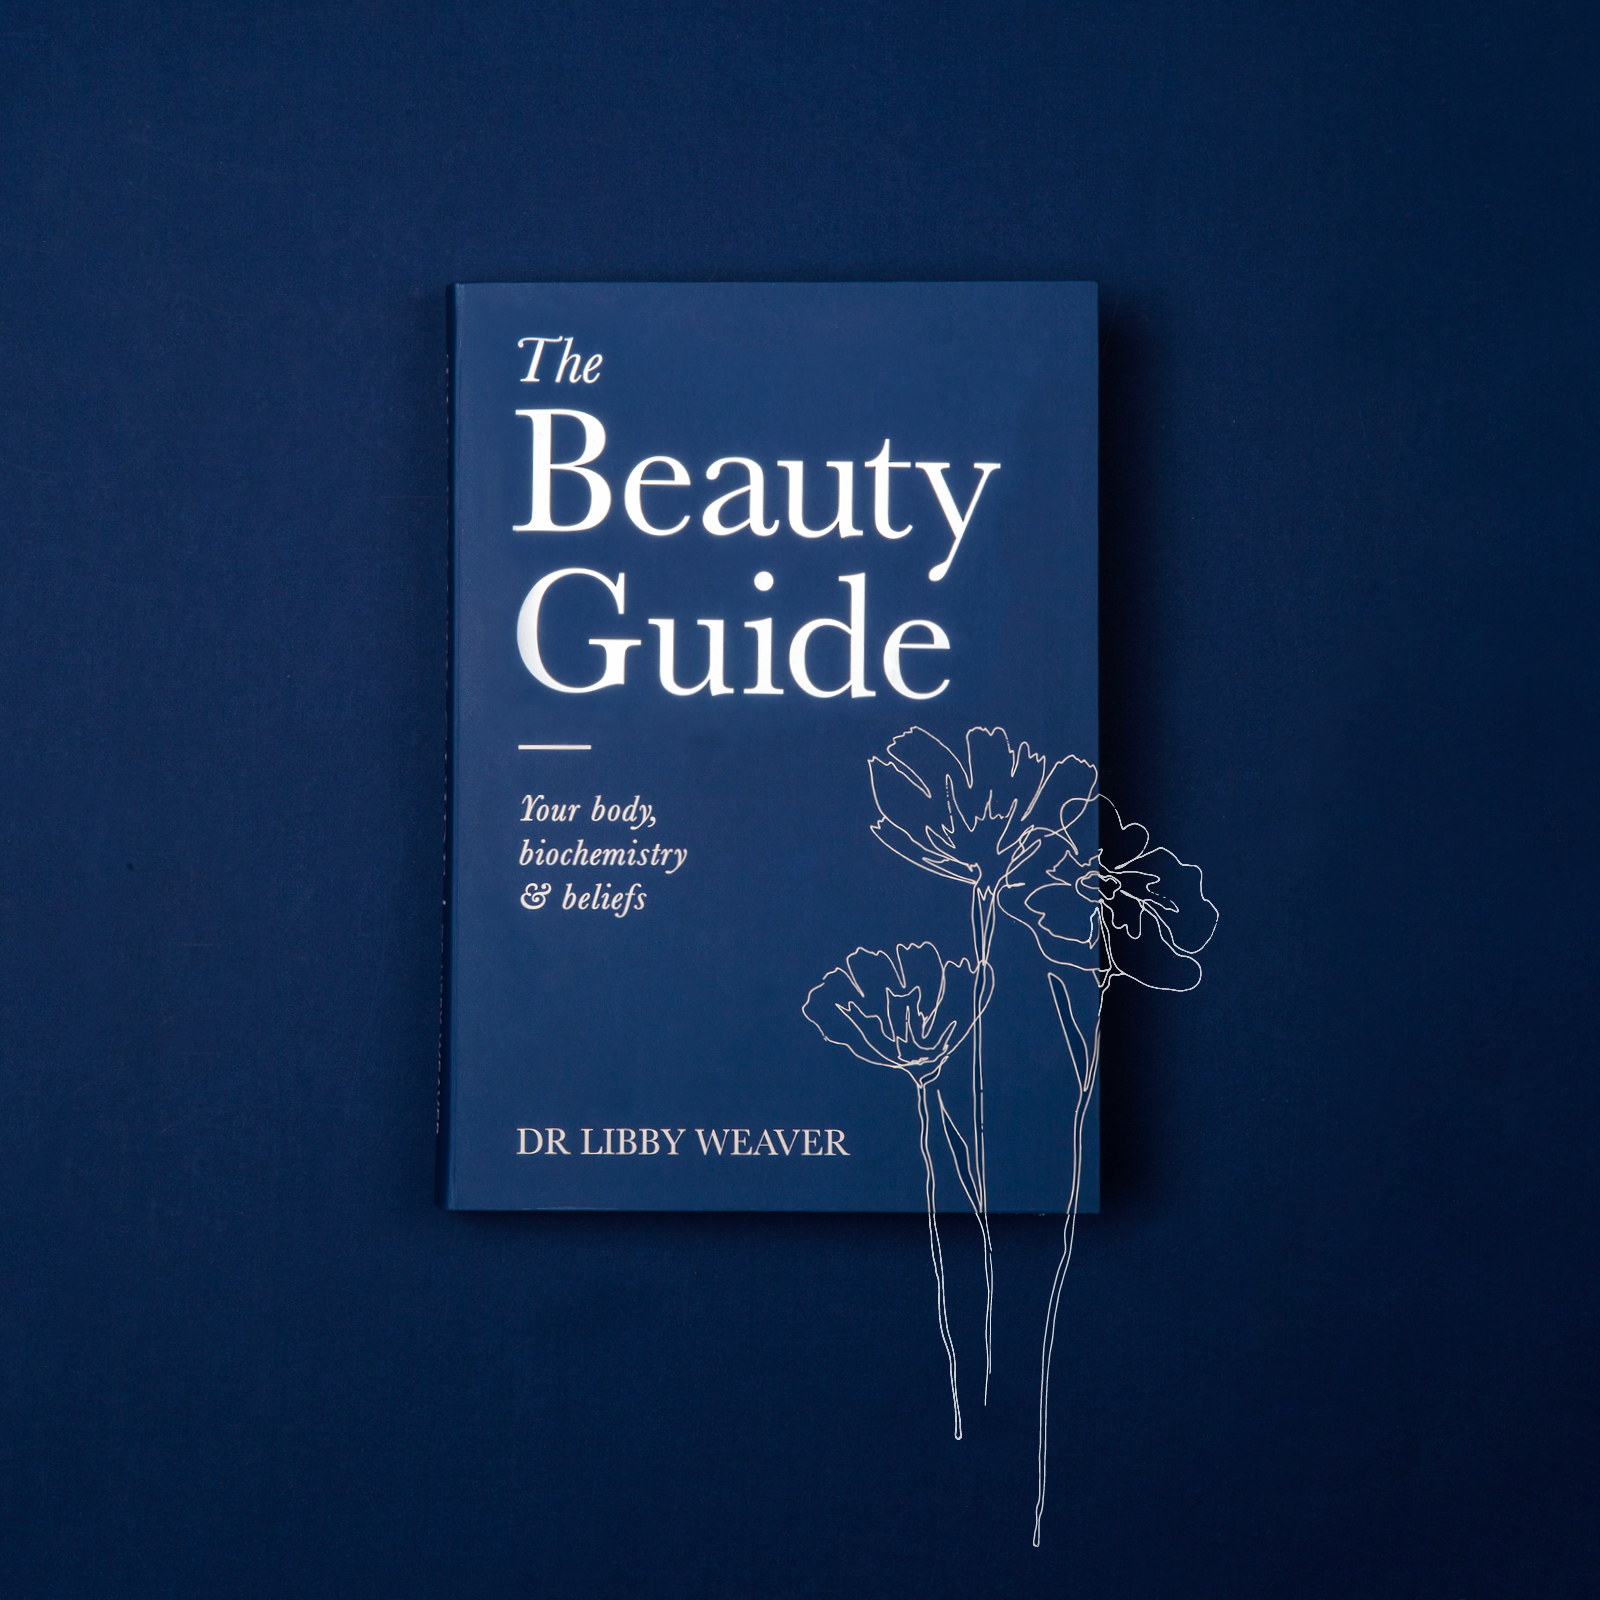 The Beauty Guide - Publication design & illustration